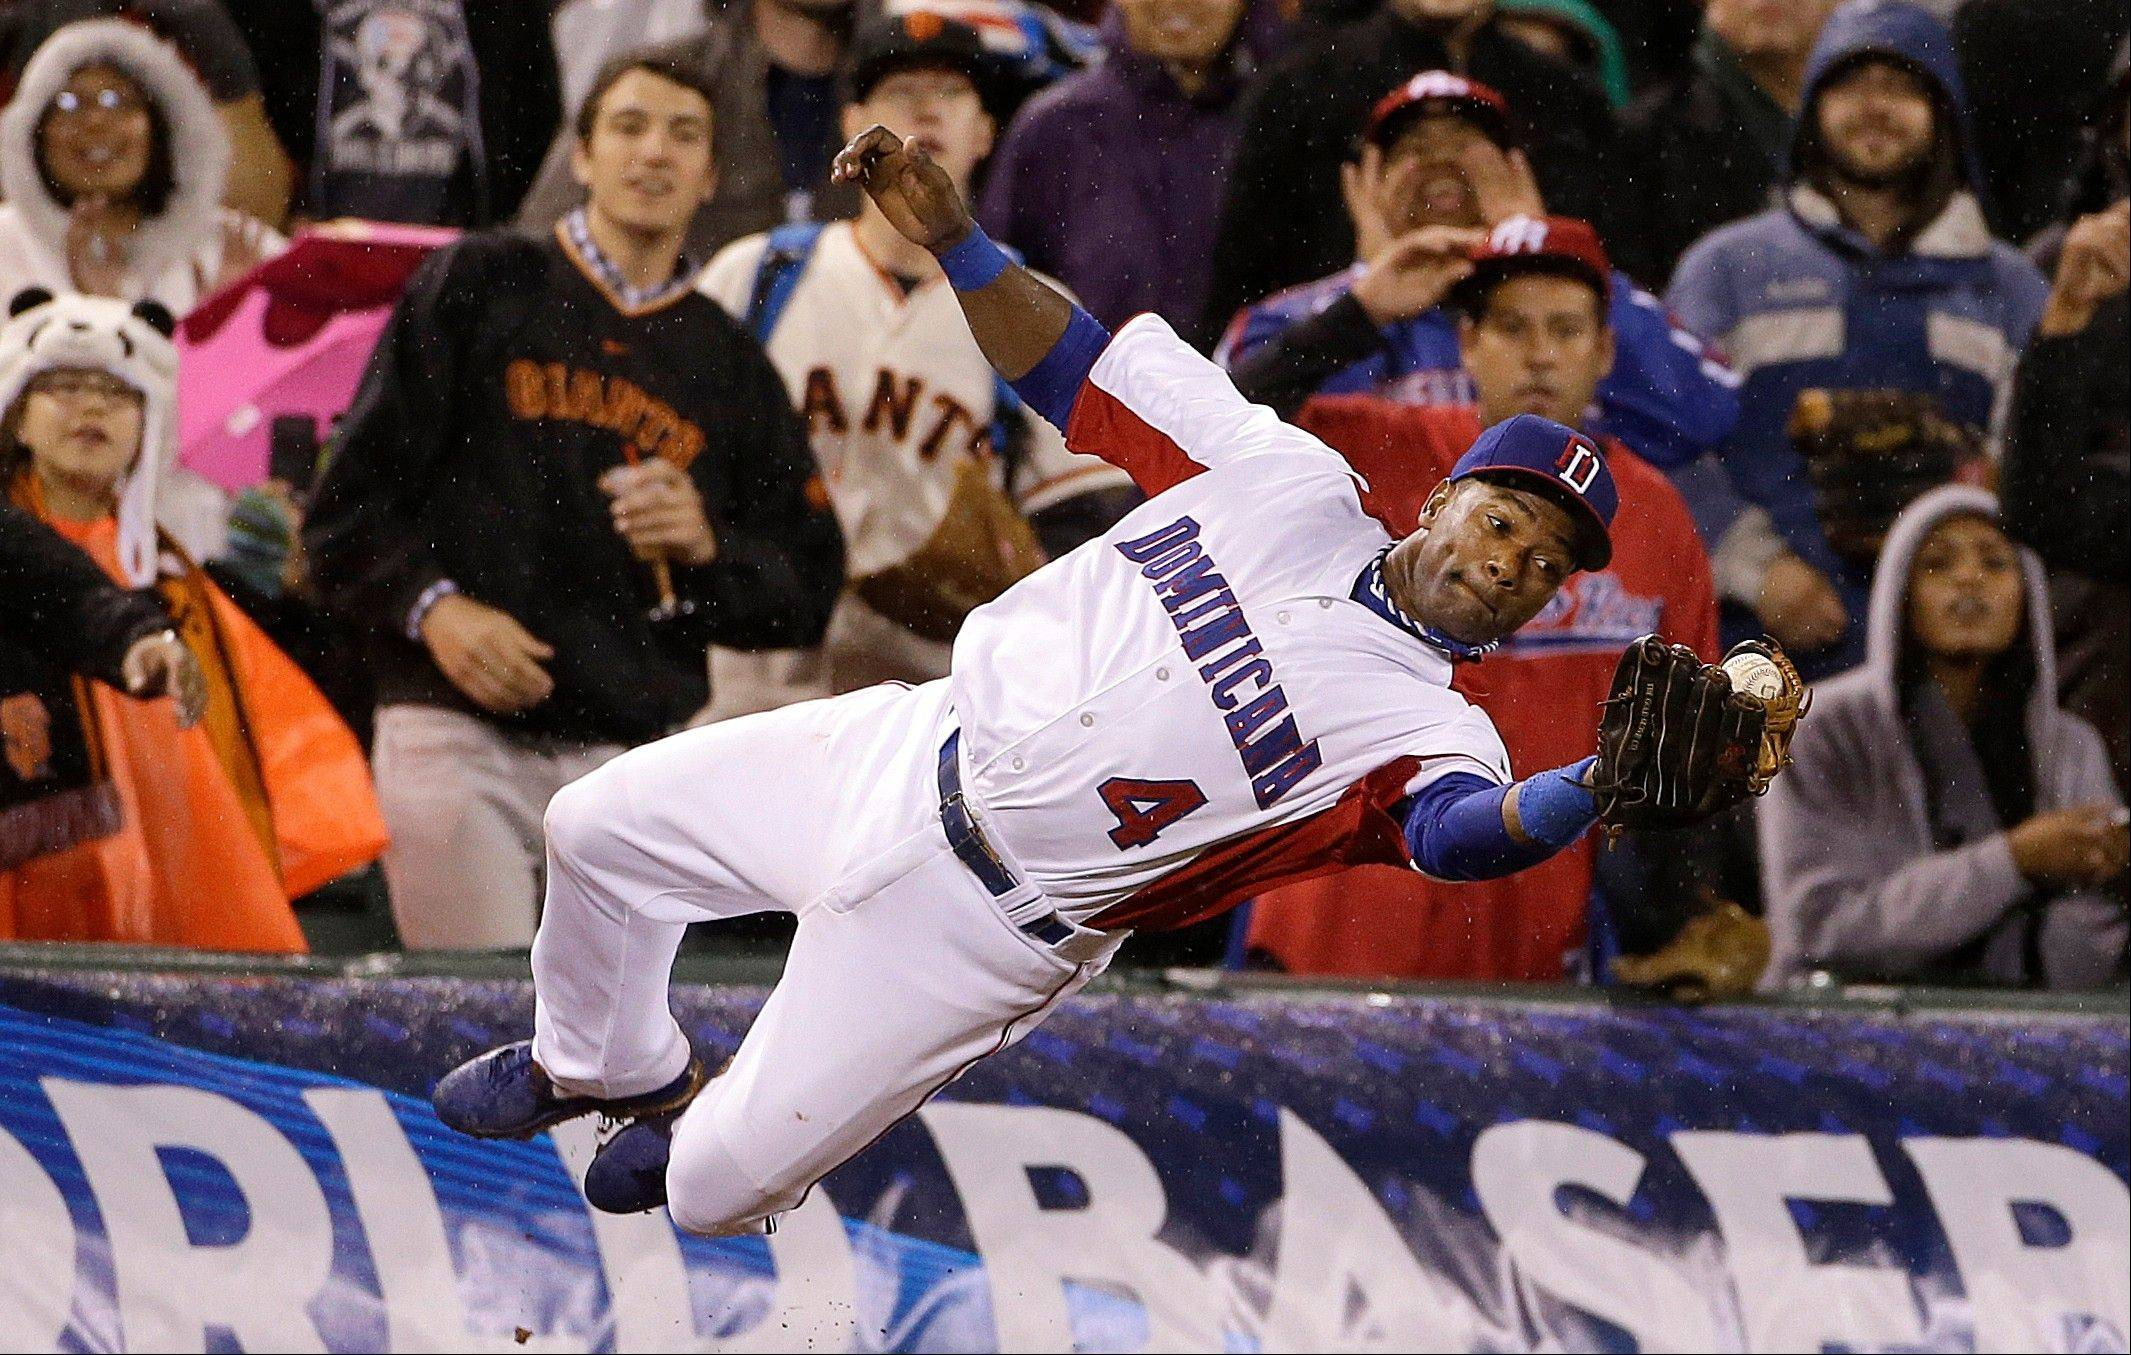 The Dominican Republic's Miguel Tejada (4) catches a foul ball hit by Puerto Rico's Jesus Feliciano during the seventh inning of the championship game of the World Baseball Classic in San Francisco, Tuesday, March 19, 2013.